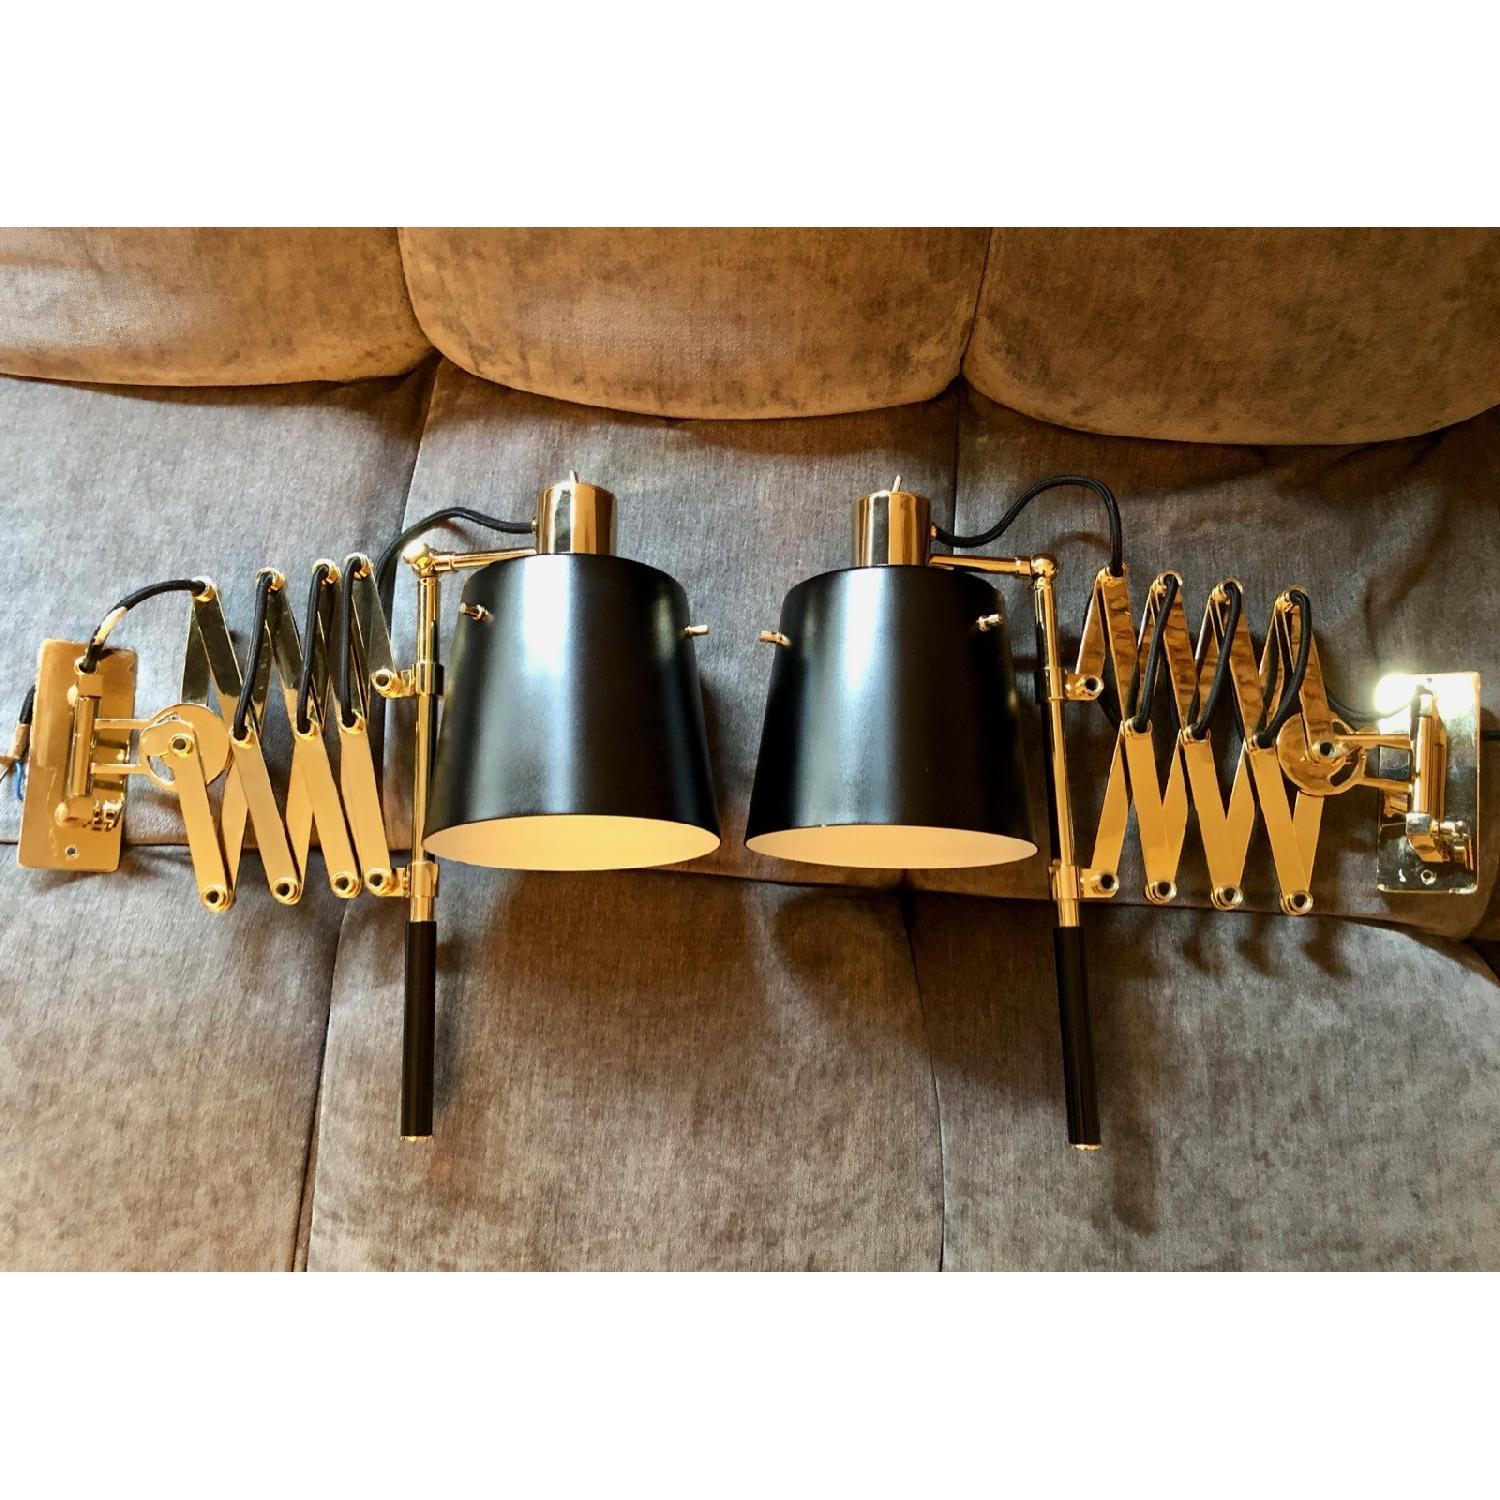 Delighttfull Pastorius Wall Lamps in Gold/Black-7